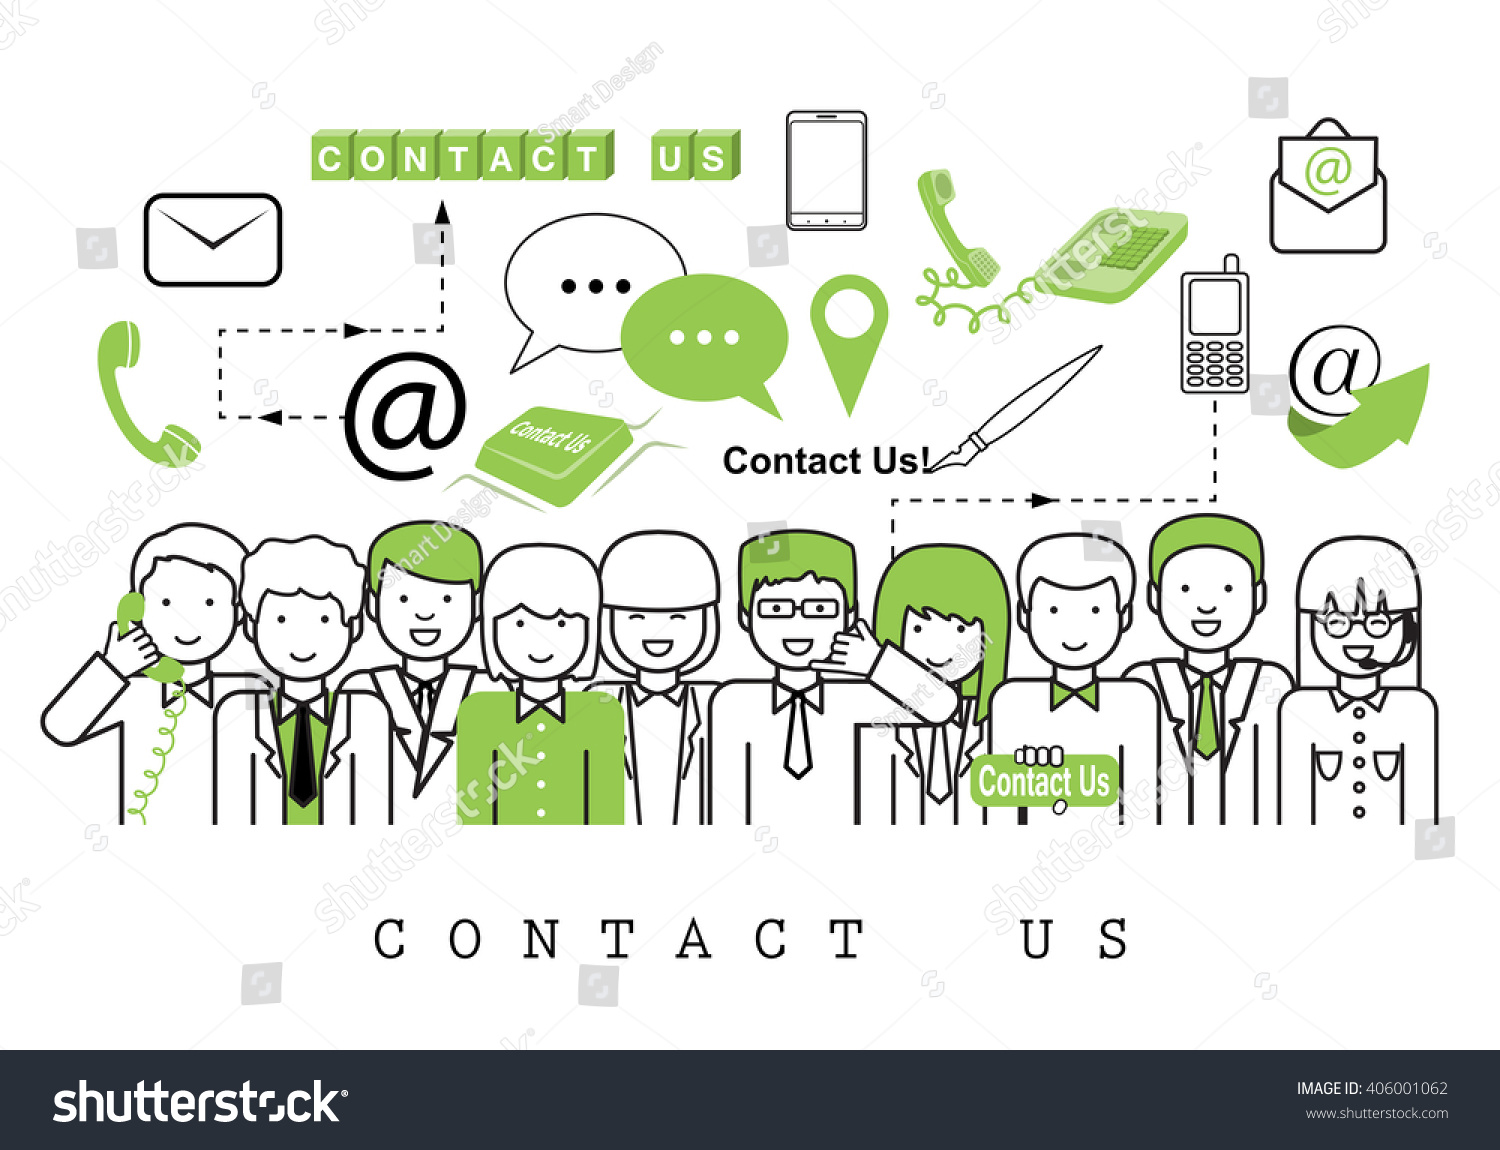 Contact us page design templates download free apps for Contact us template free download